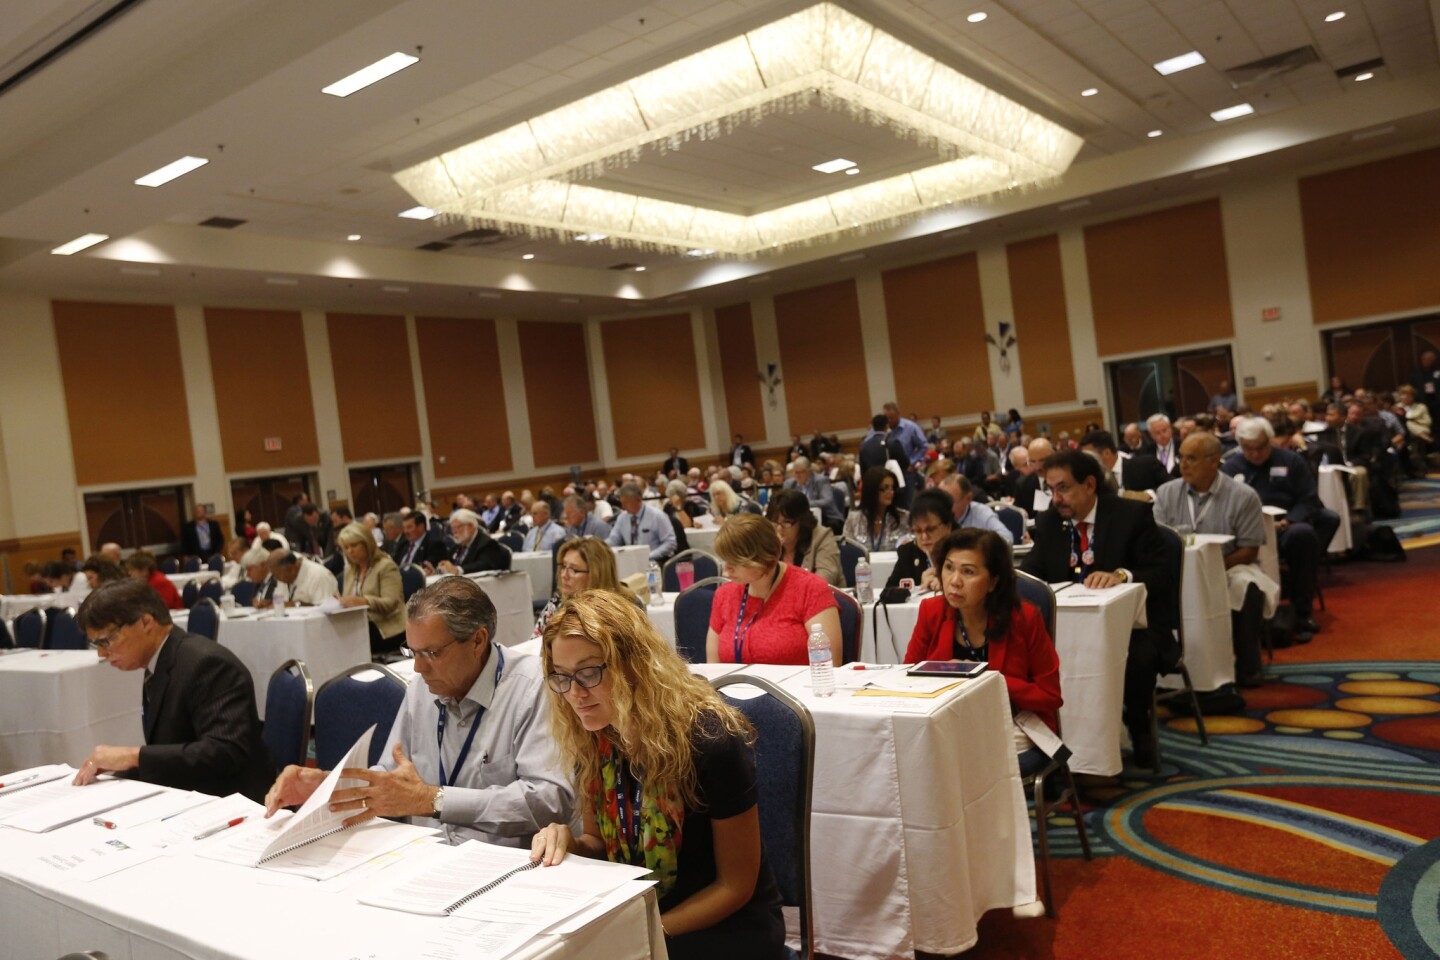 The platform committee meets to discuss immigration and other issues at the Anaheim Marriott.